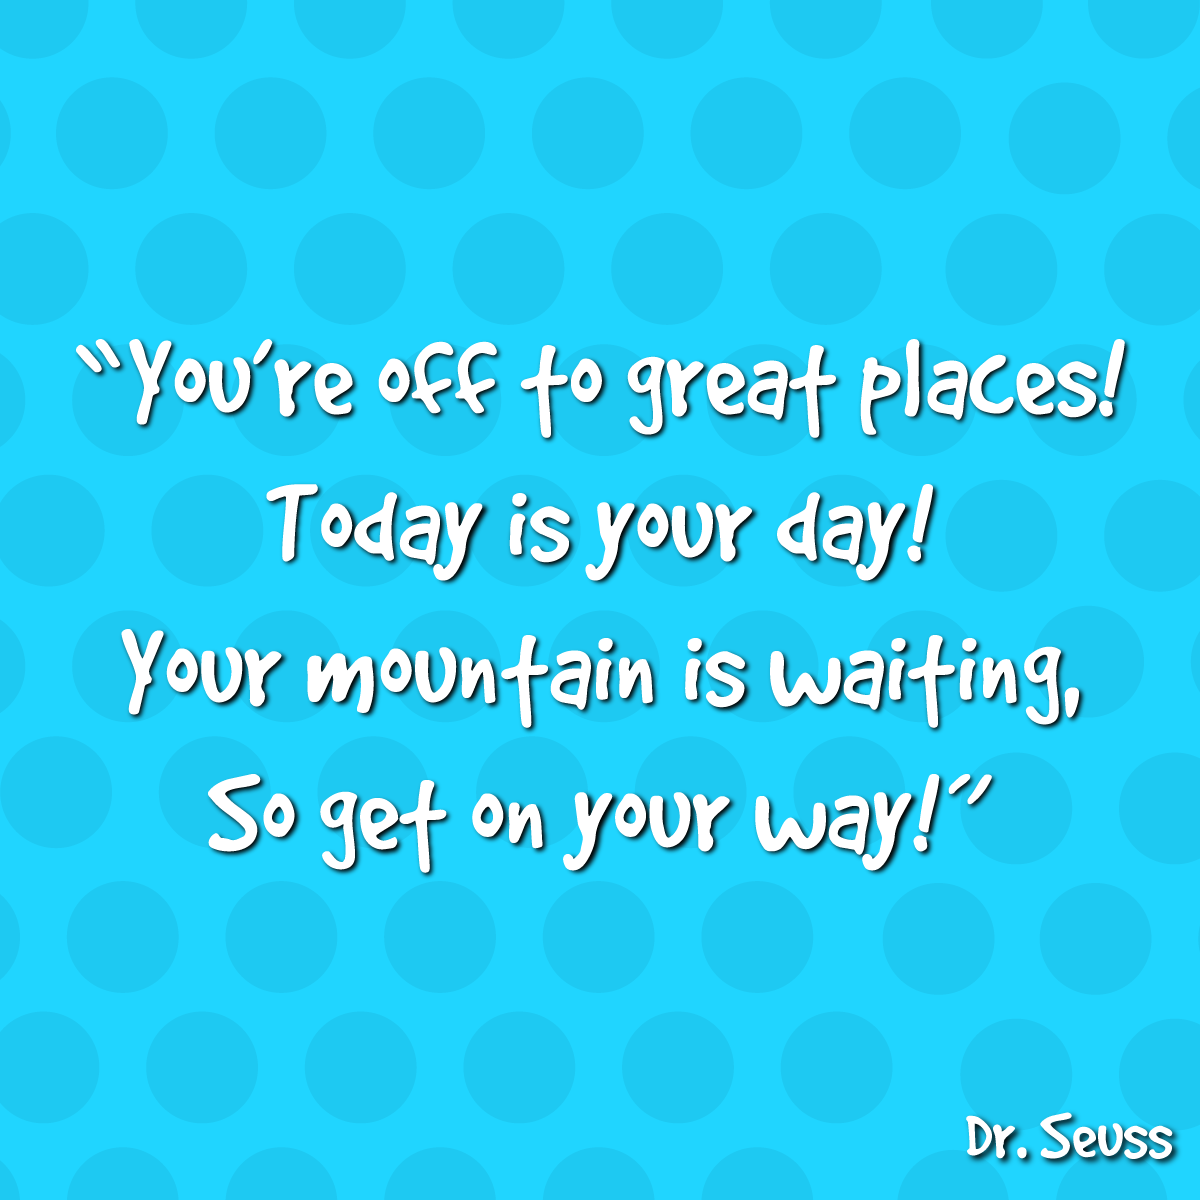 March 2nd is Dr. Seuss Day! Did you know that Dr. Seuss published more than 60 books? Leave a comment and tell us your favorite.